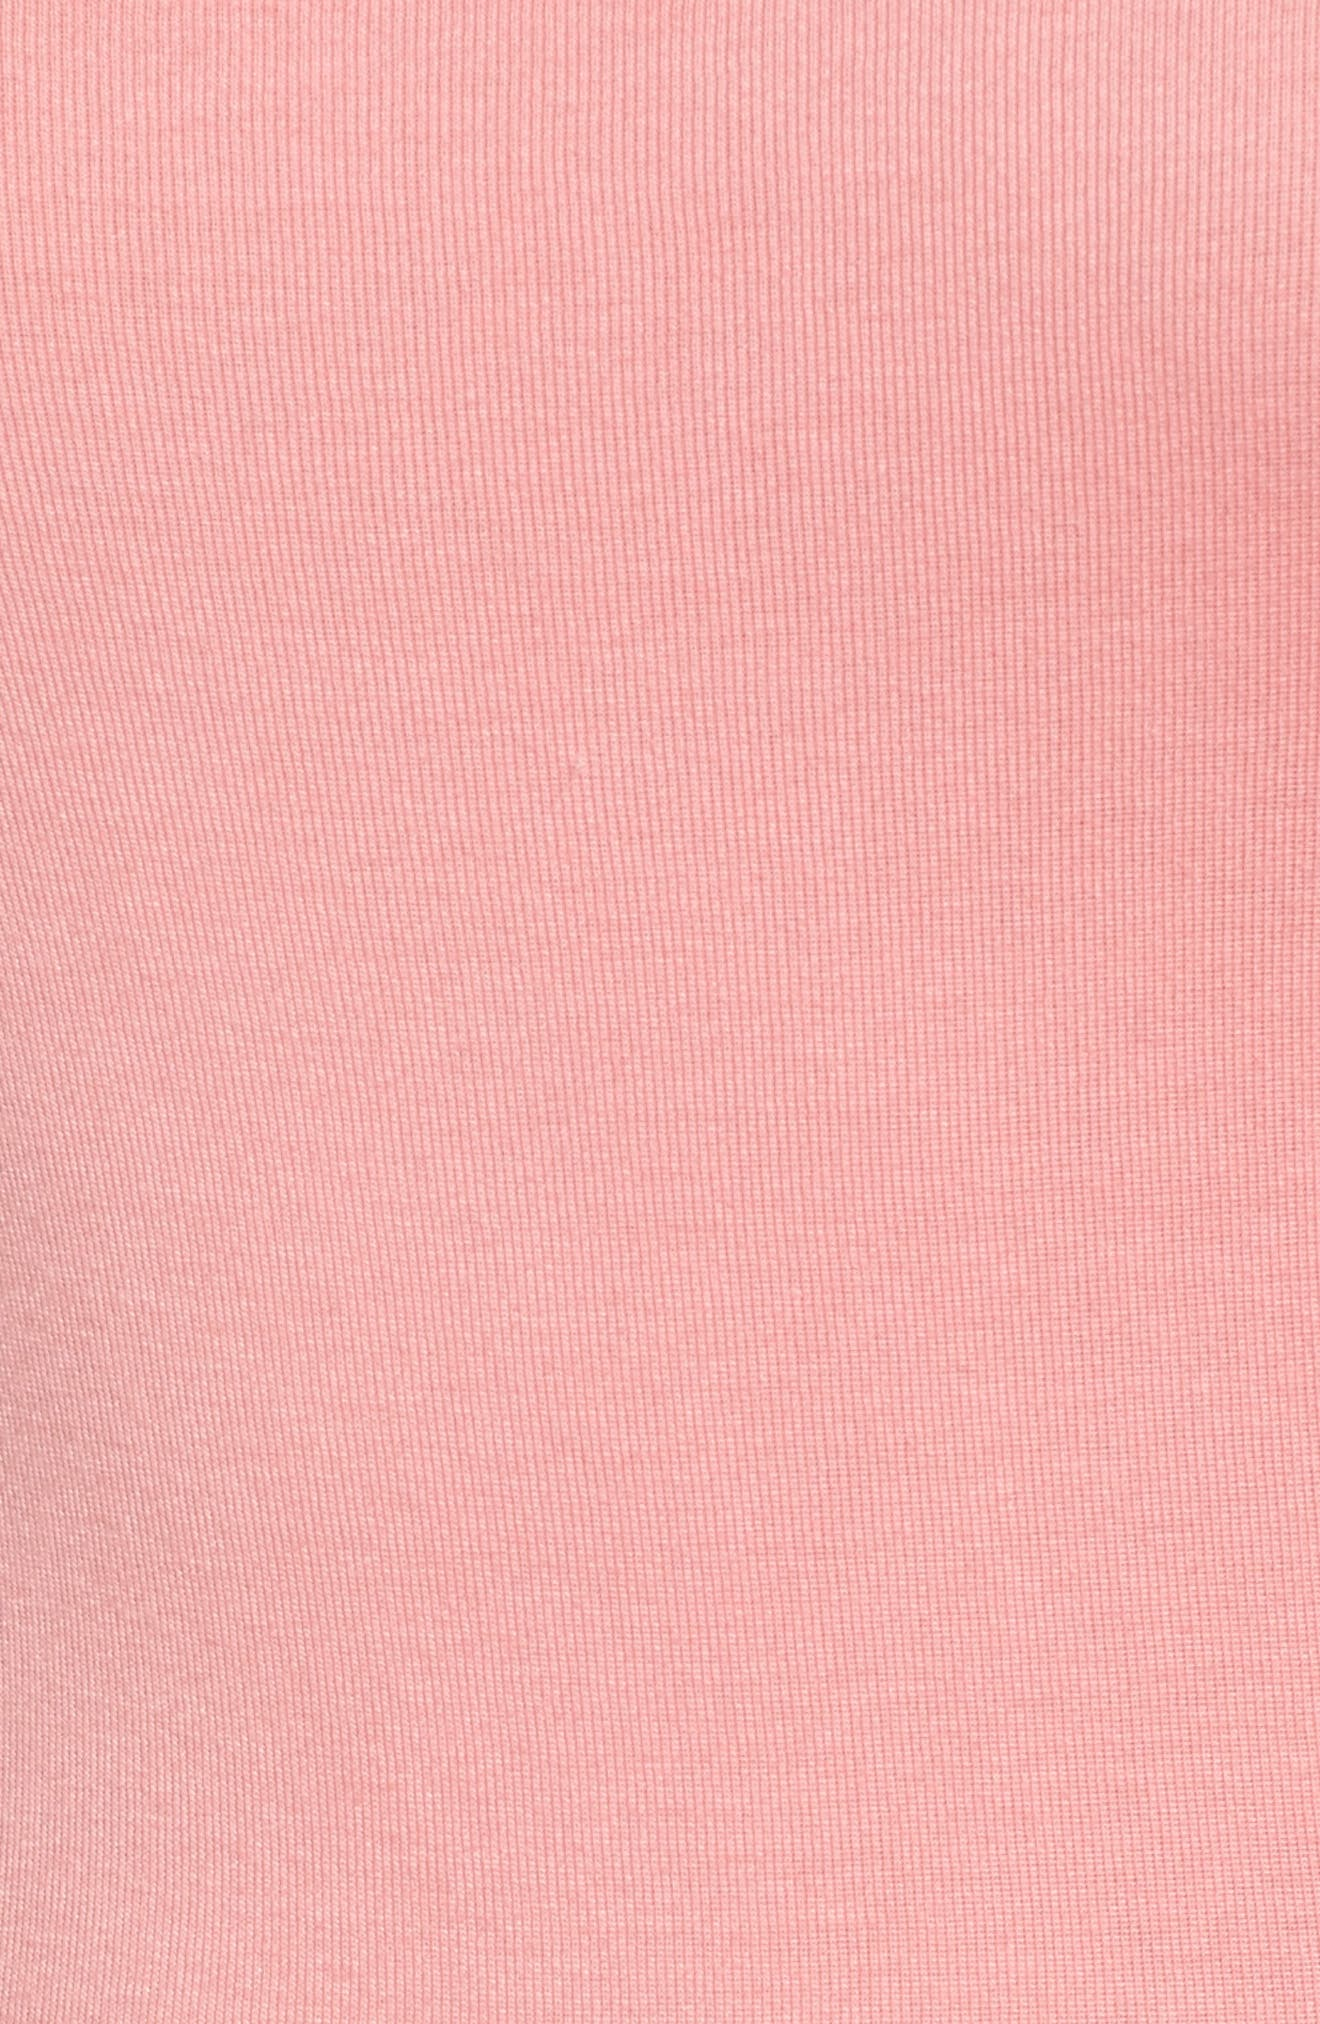 Ballet Neck Cotton & Modal Knit Elbow Sleeve Tee,                             Alternate thumbnail 5, color,                             Pink Berry Ice